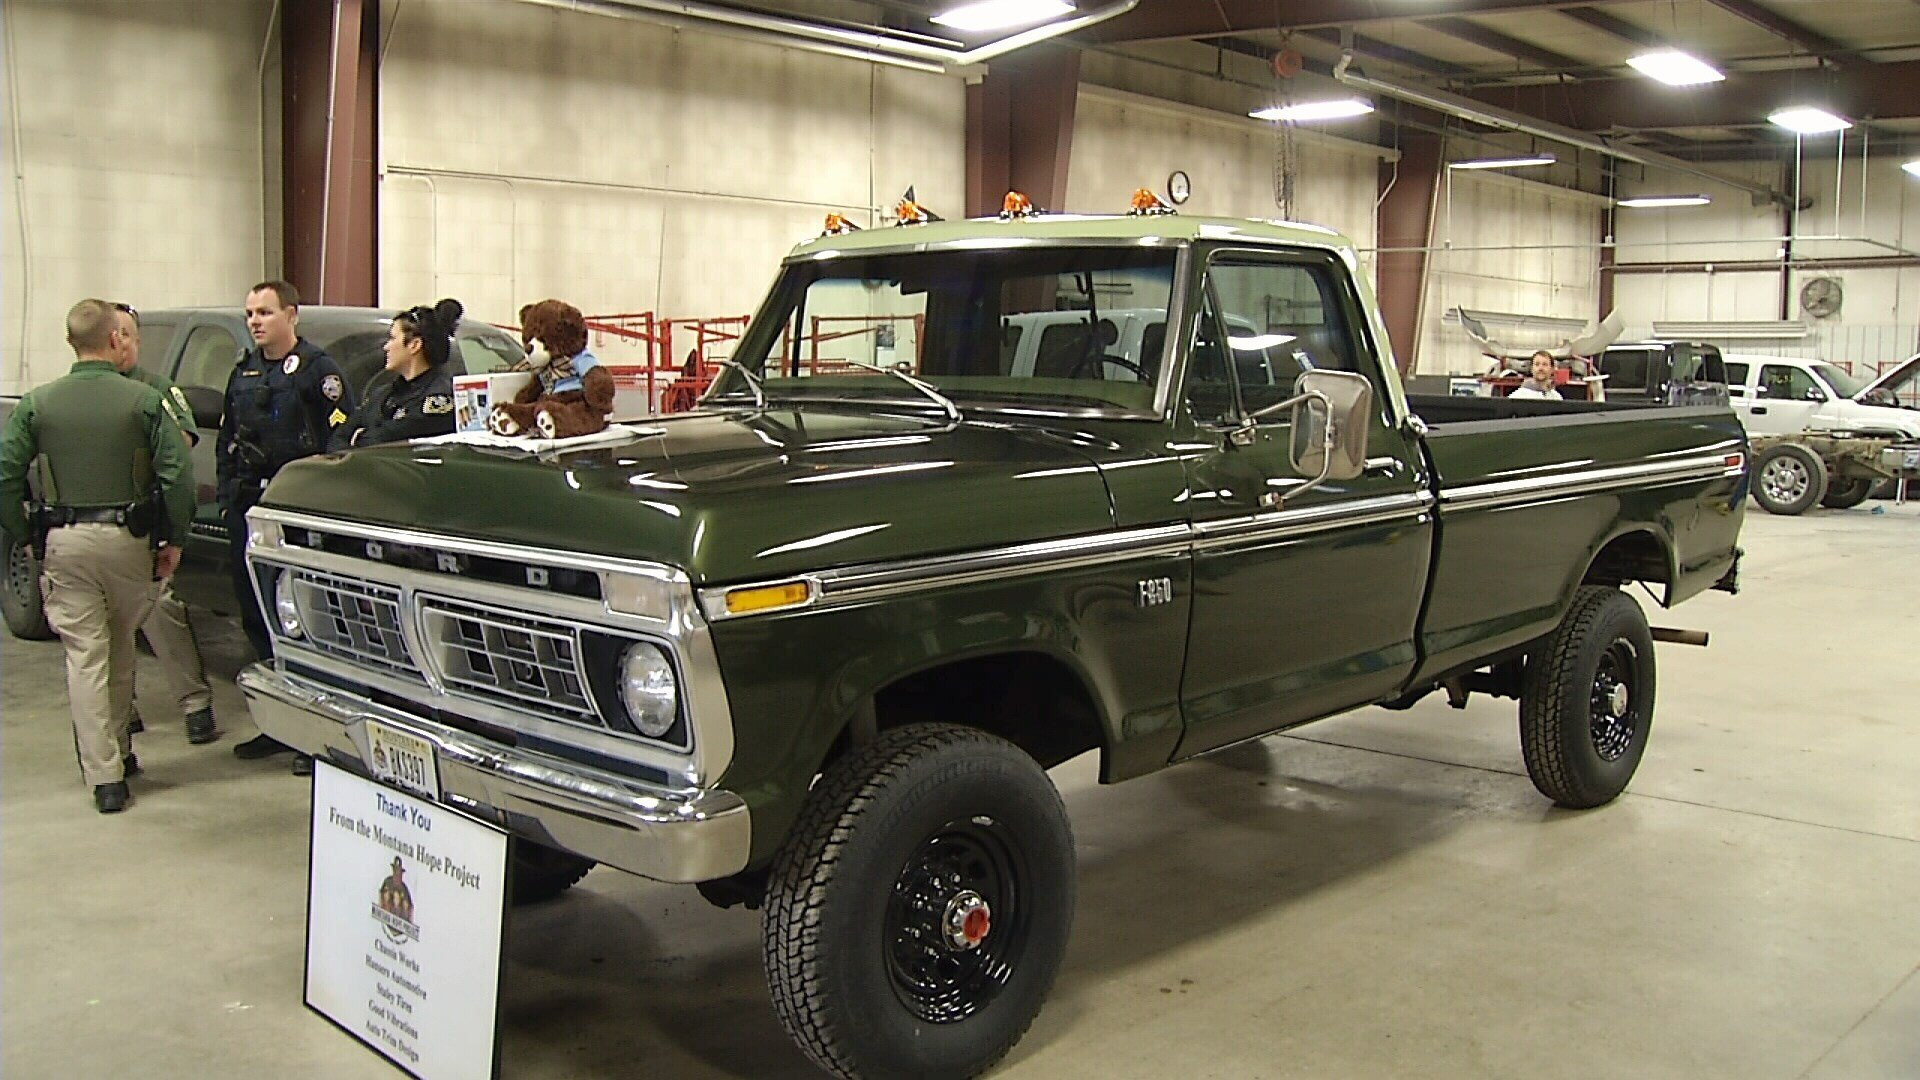 montana hope project restores classic pick-up truck for roundup